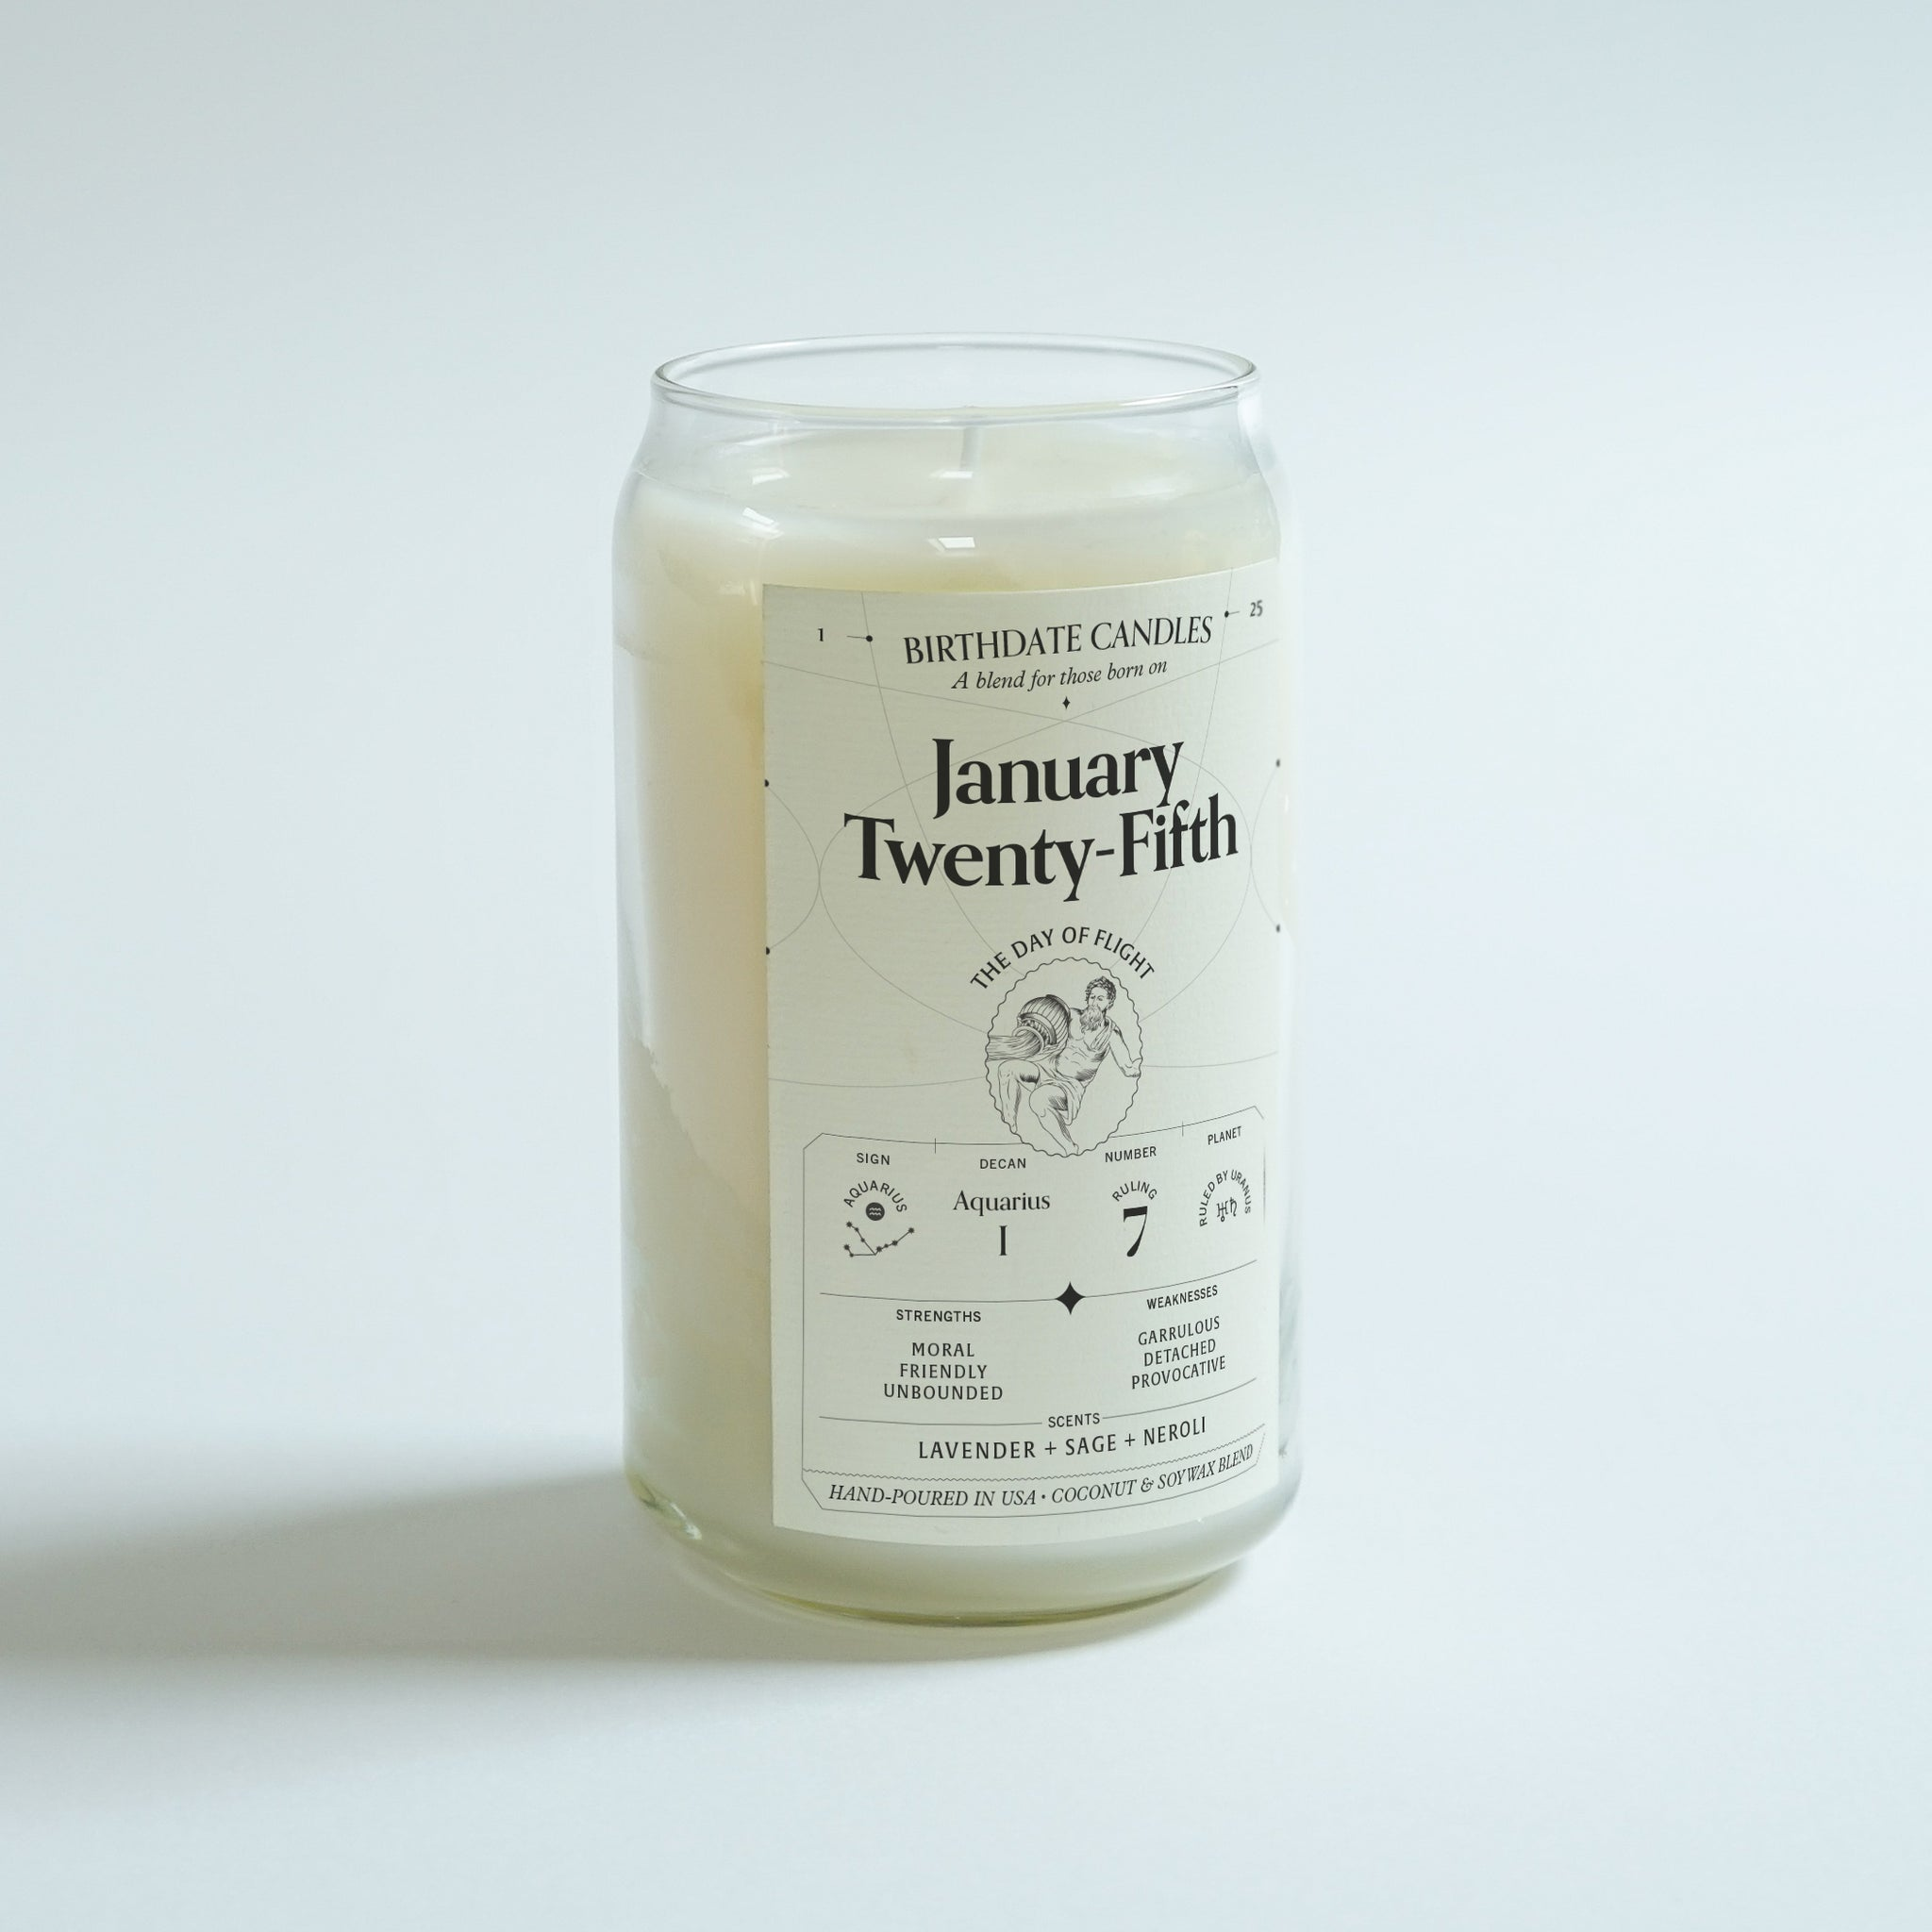 The January Twenty-Fifth Birthday Candle